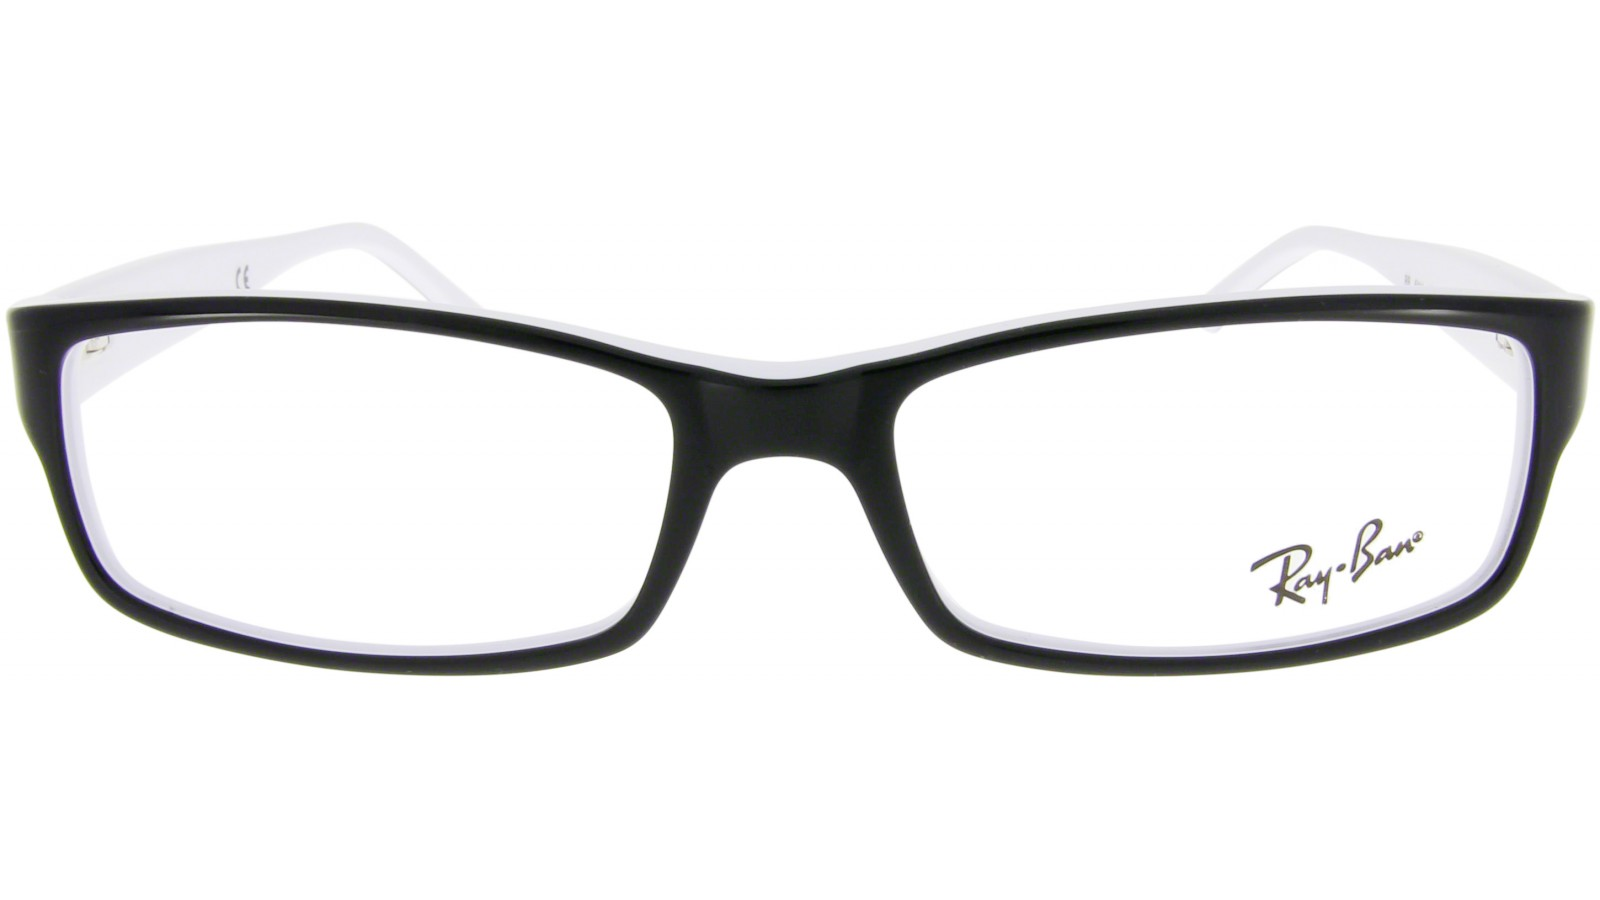 Ray Ban Brille RX 5114 2097 52/135